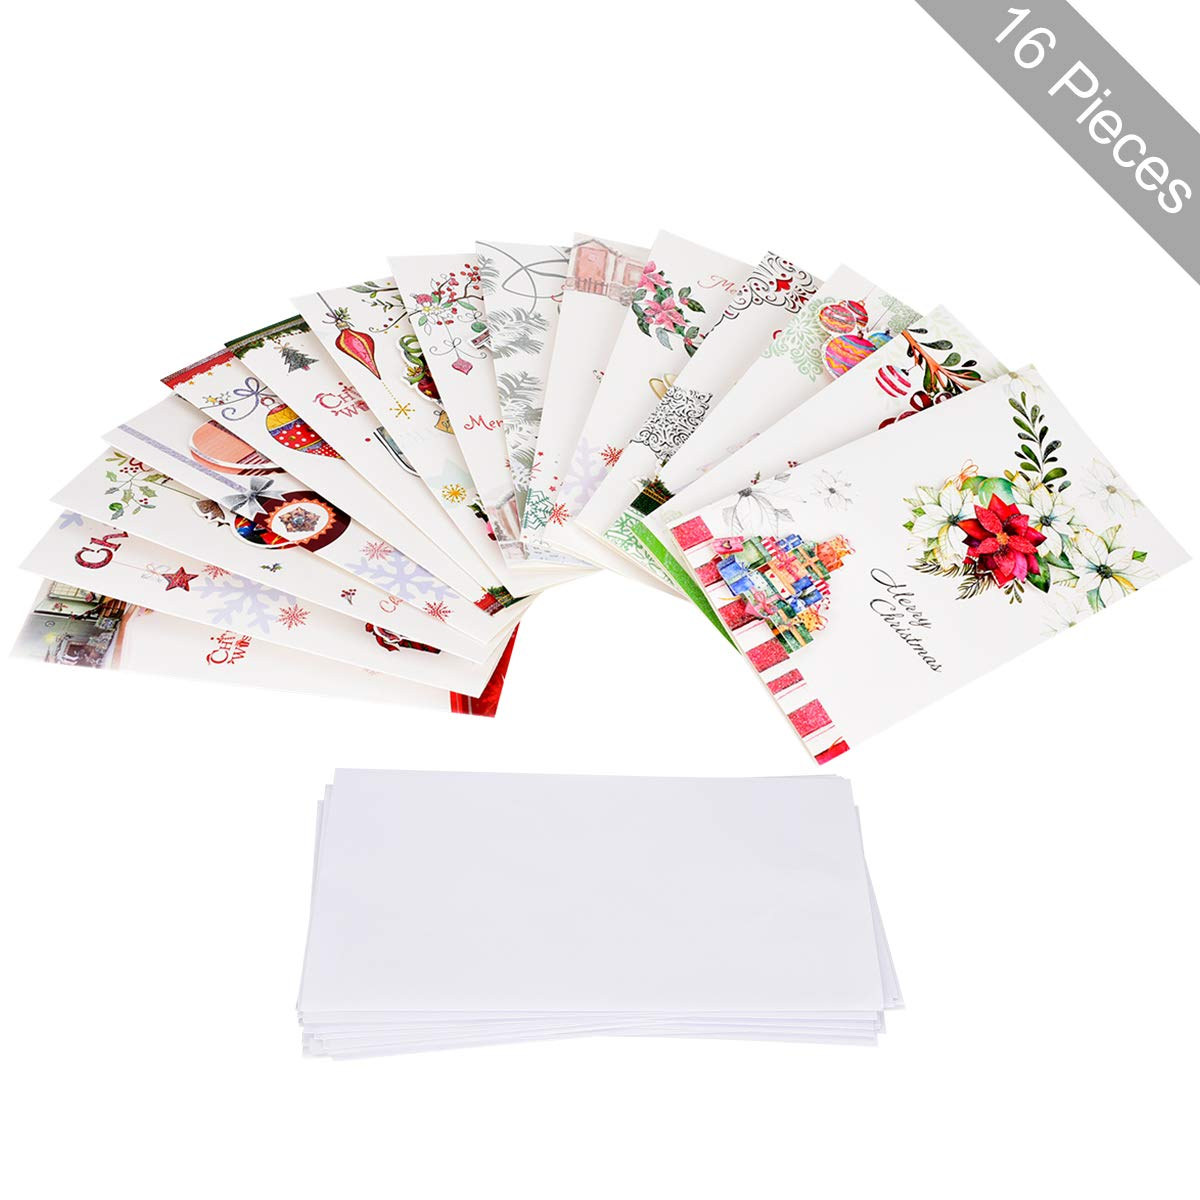 legendtech greeting cards merry christmas greeting cards with envelope in bulk greeting cards organizer for holiday - Bulk Greeting Cards